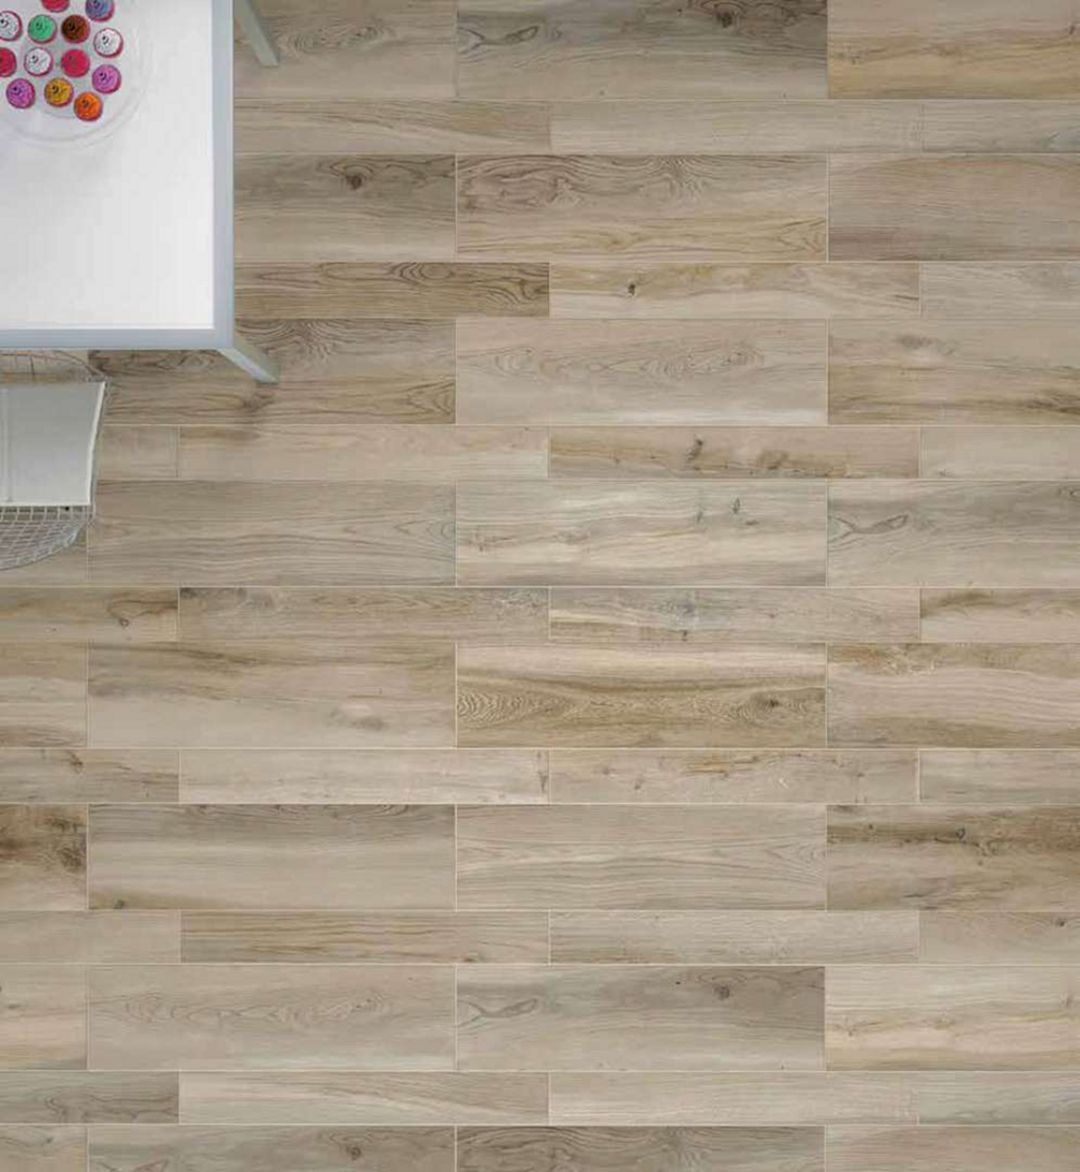 Inspiring 30 Awesome Wood Floor With Tiles Border Design Ideas To Increase  Your Home Beauty Https